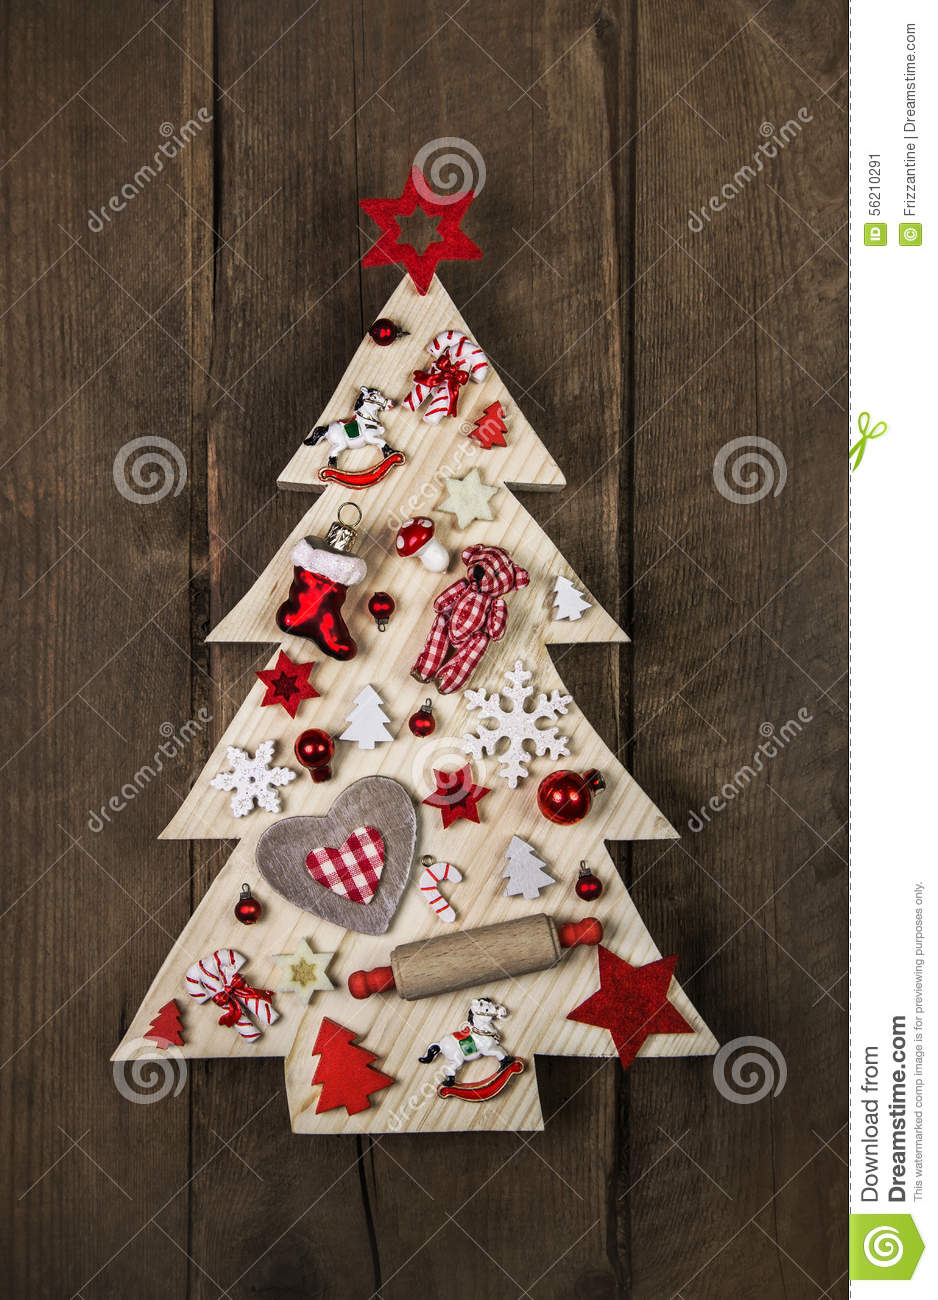 White christmas tree with red decorations - Wooden Handmade Christmas Tree With White And Red Decoration